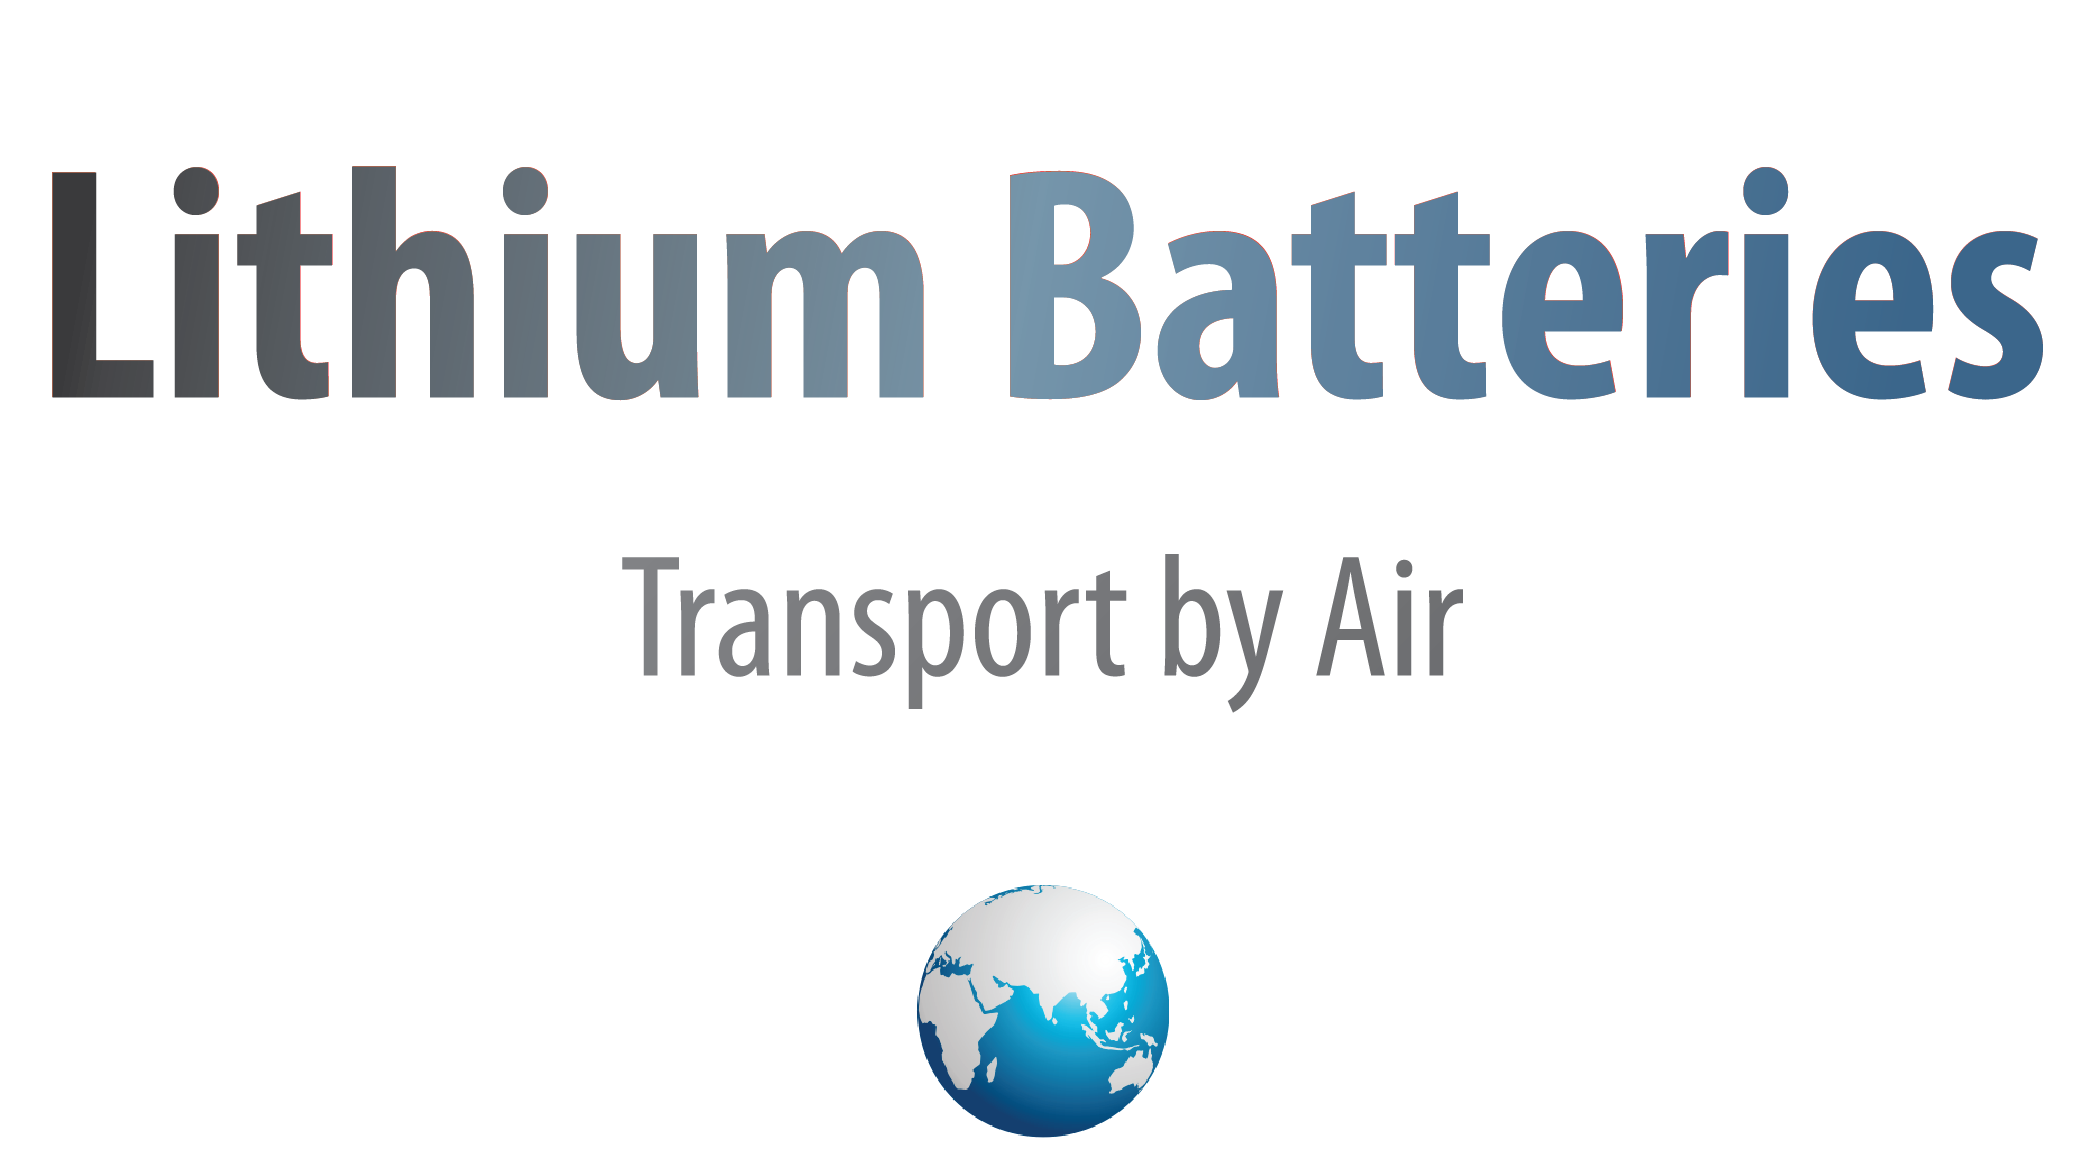 Shipping Small Lithium Batteries by Air